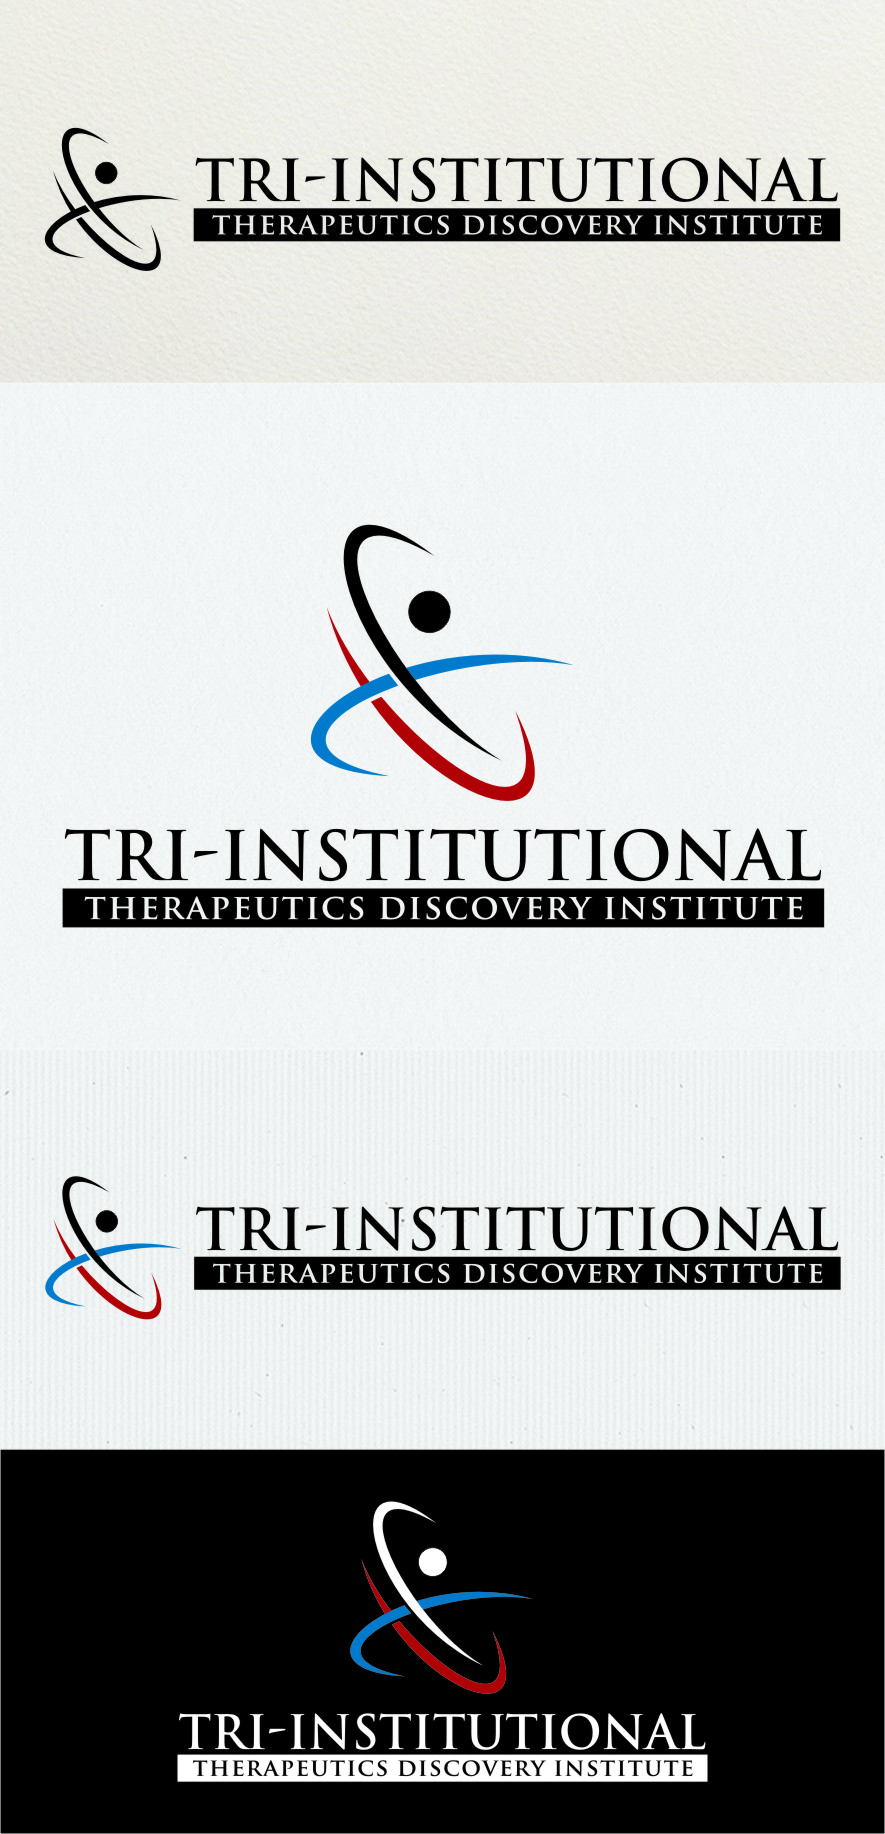 Logo Design by RasYa Muhammad Athaya - Entry No. 187 in the Logo Design Contest Inspiring Logo Design for Tri-Institutional Therapeutics Discovery Institute.